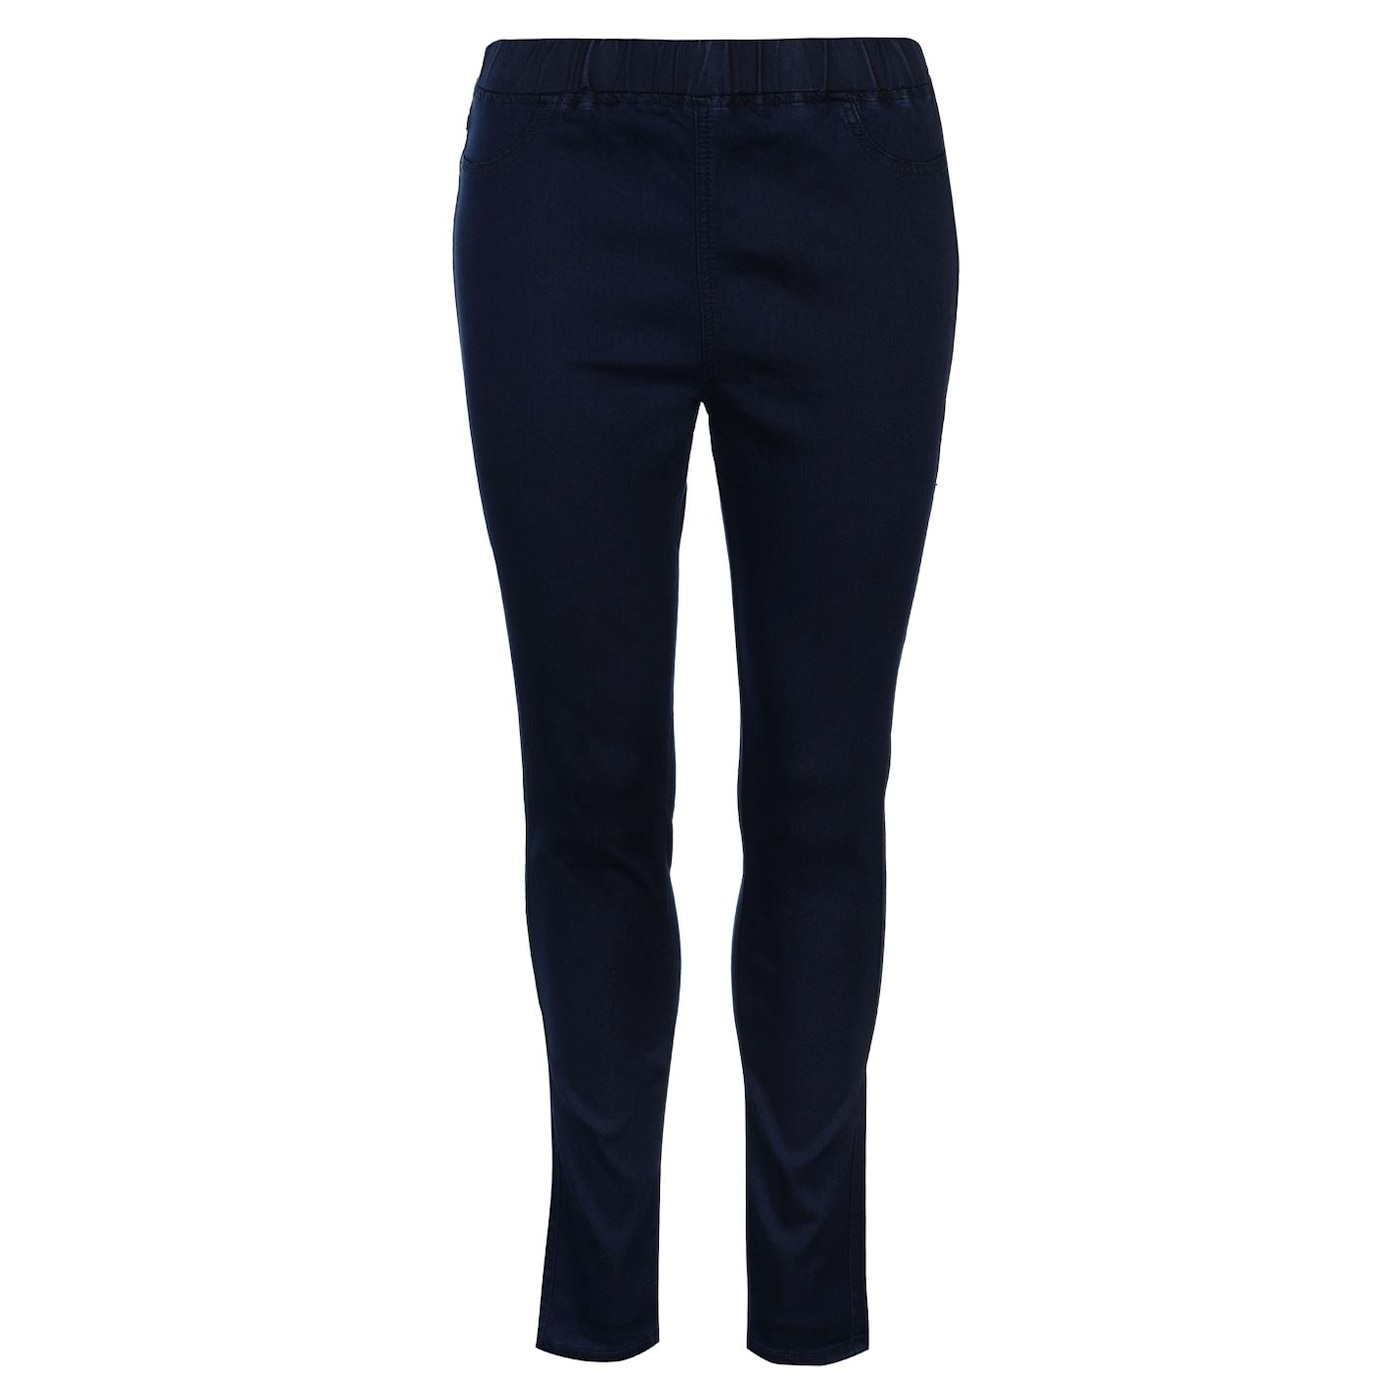 Rock and Rags Super Soft Jeggings